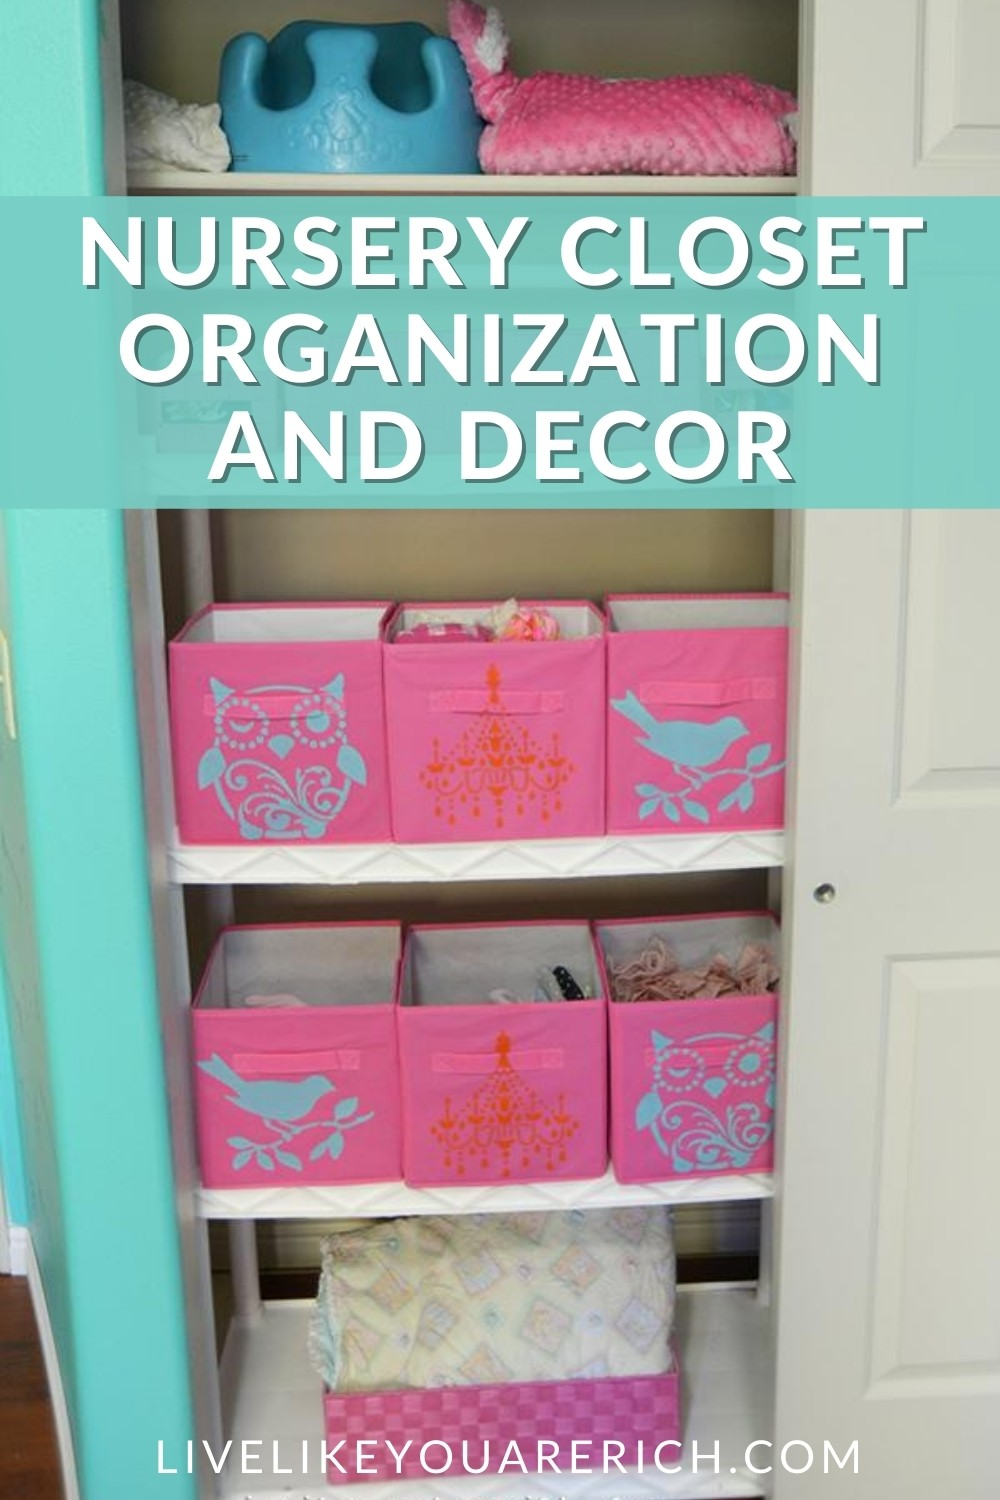 This Nursery Closet Organization and Decor is an inexpensive, yet very quick organization project. I am very happy with the way it turned out and with theTulip for Your Home stencils and paintit turned out much cuter than I could've imagined. It works great for busy and efficient parents.